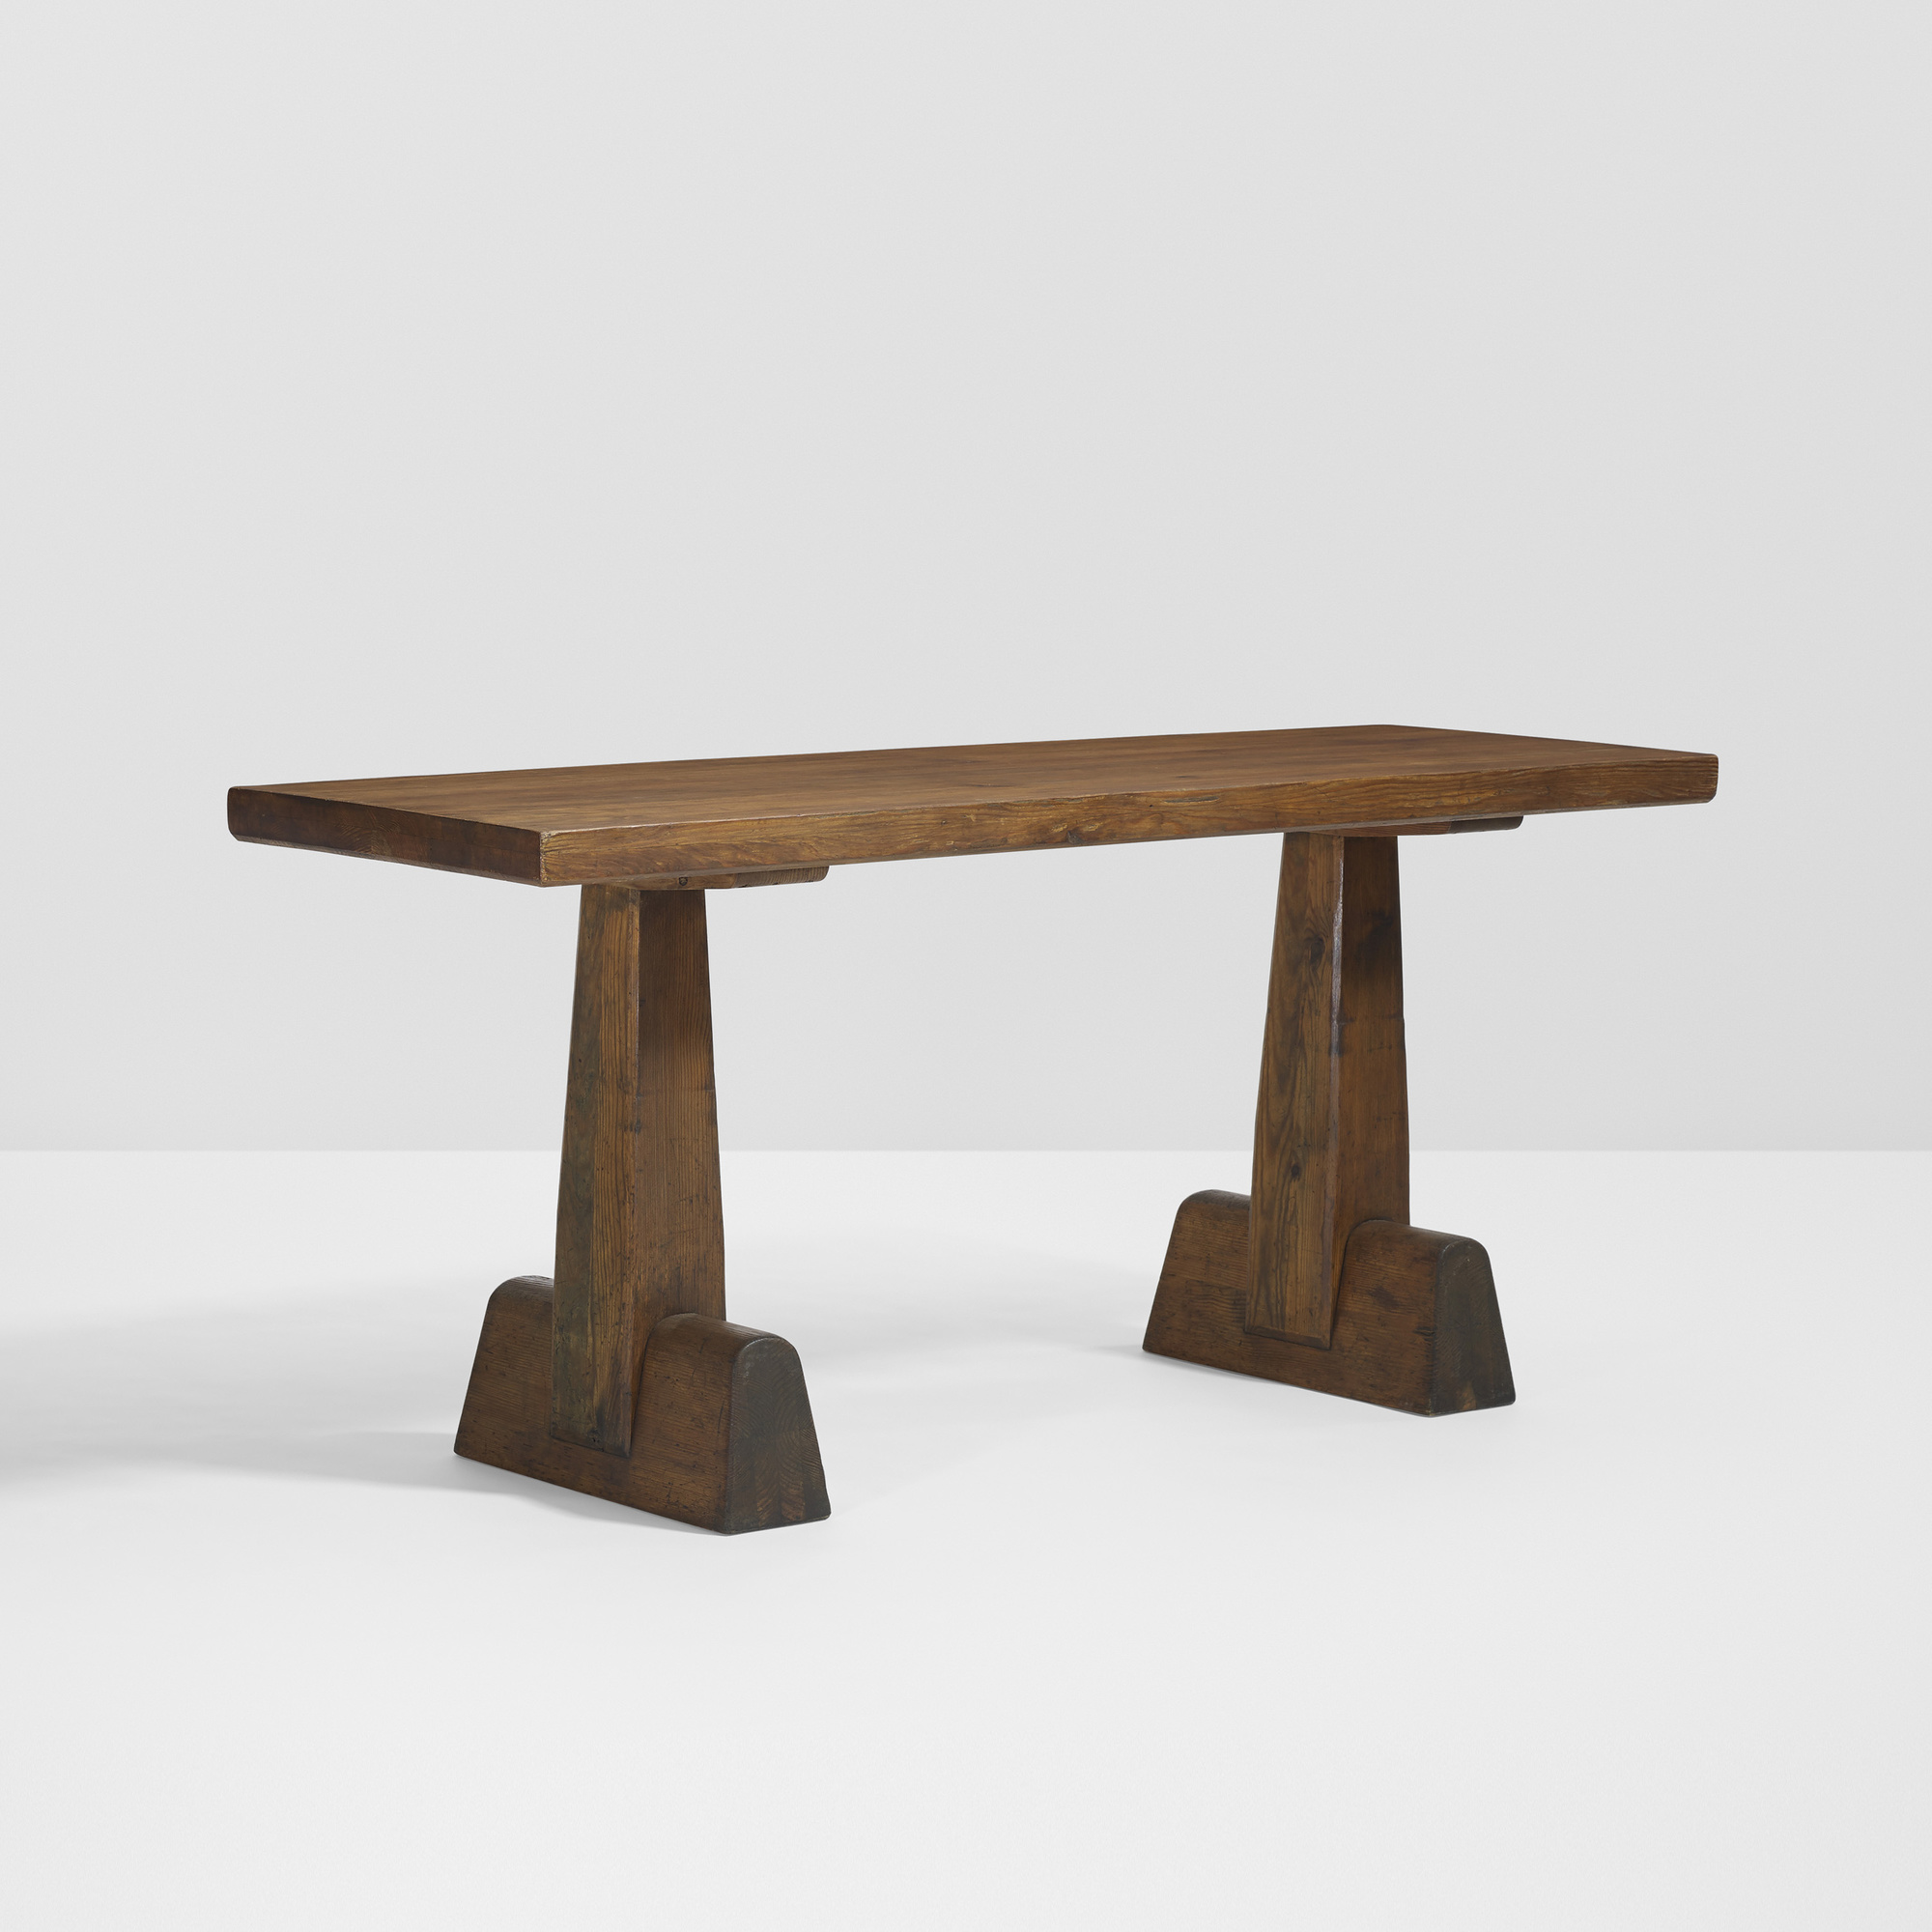 22 axel einar hjorth ut dining table for Dining table design 2015